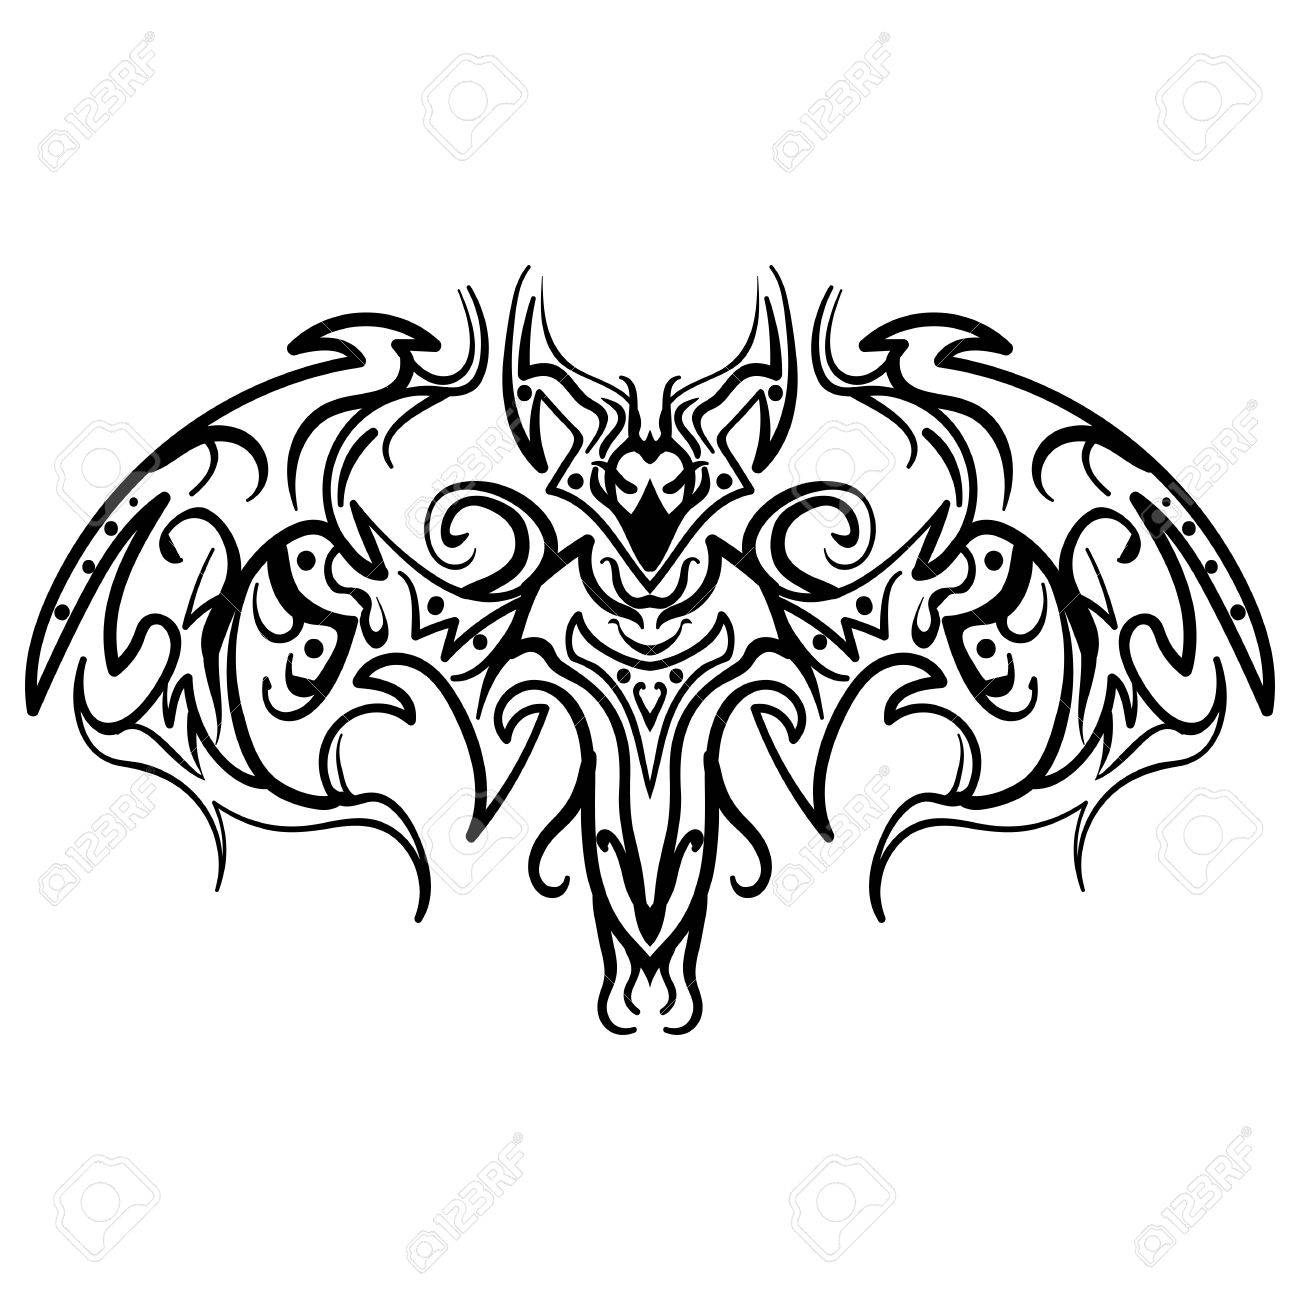 1300x1300 The Stylized Image Of A Doodle Bat. Vector Stylized Of Ink Sketch